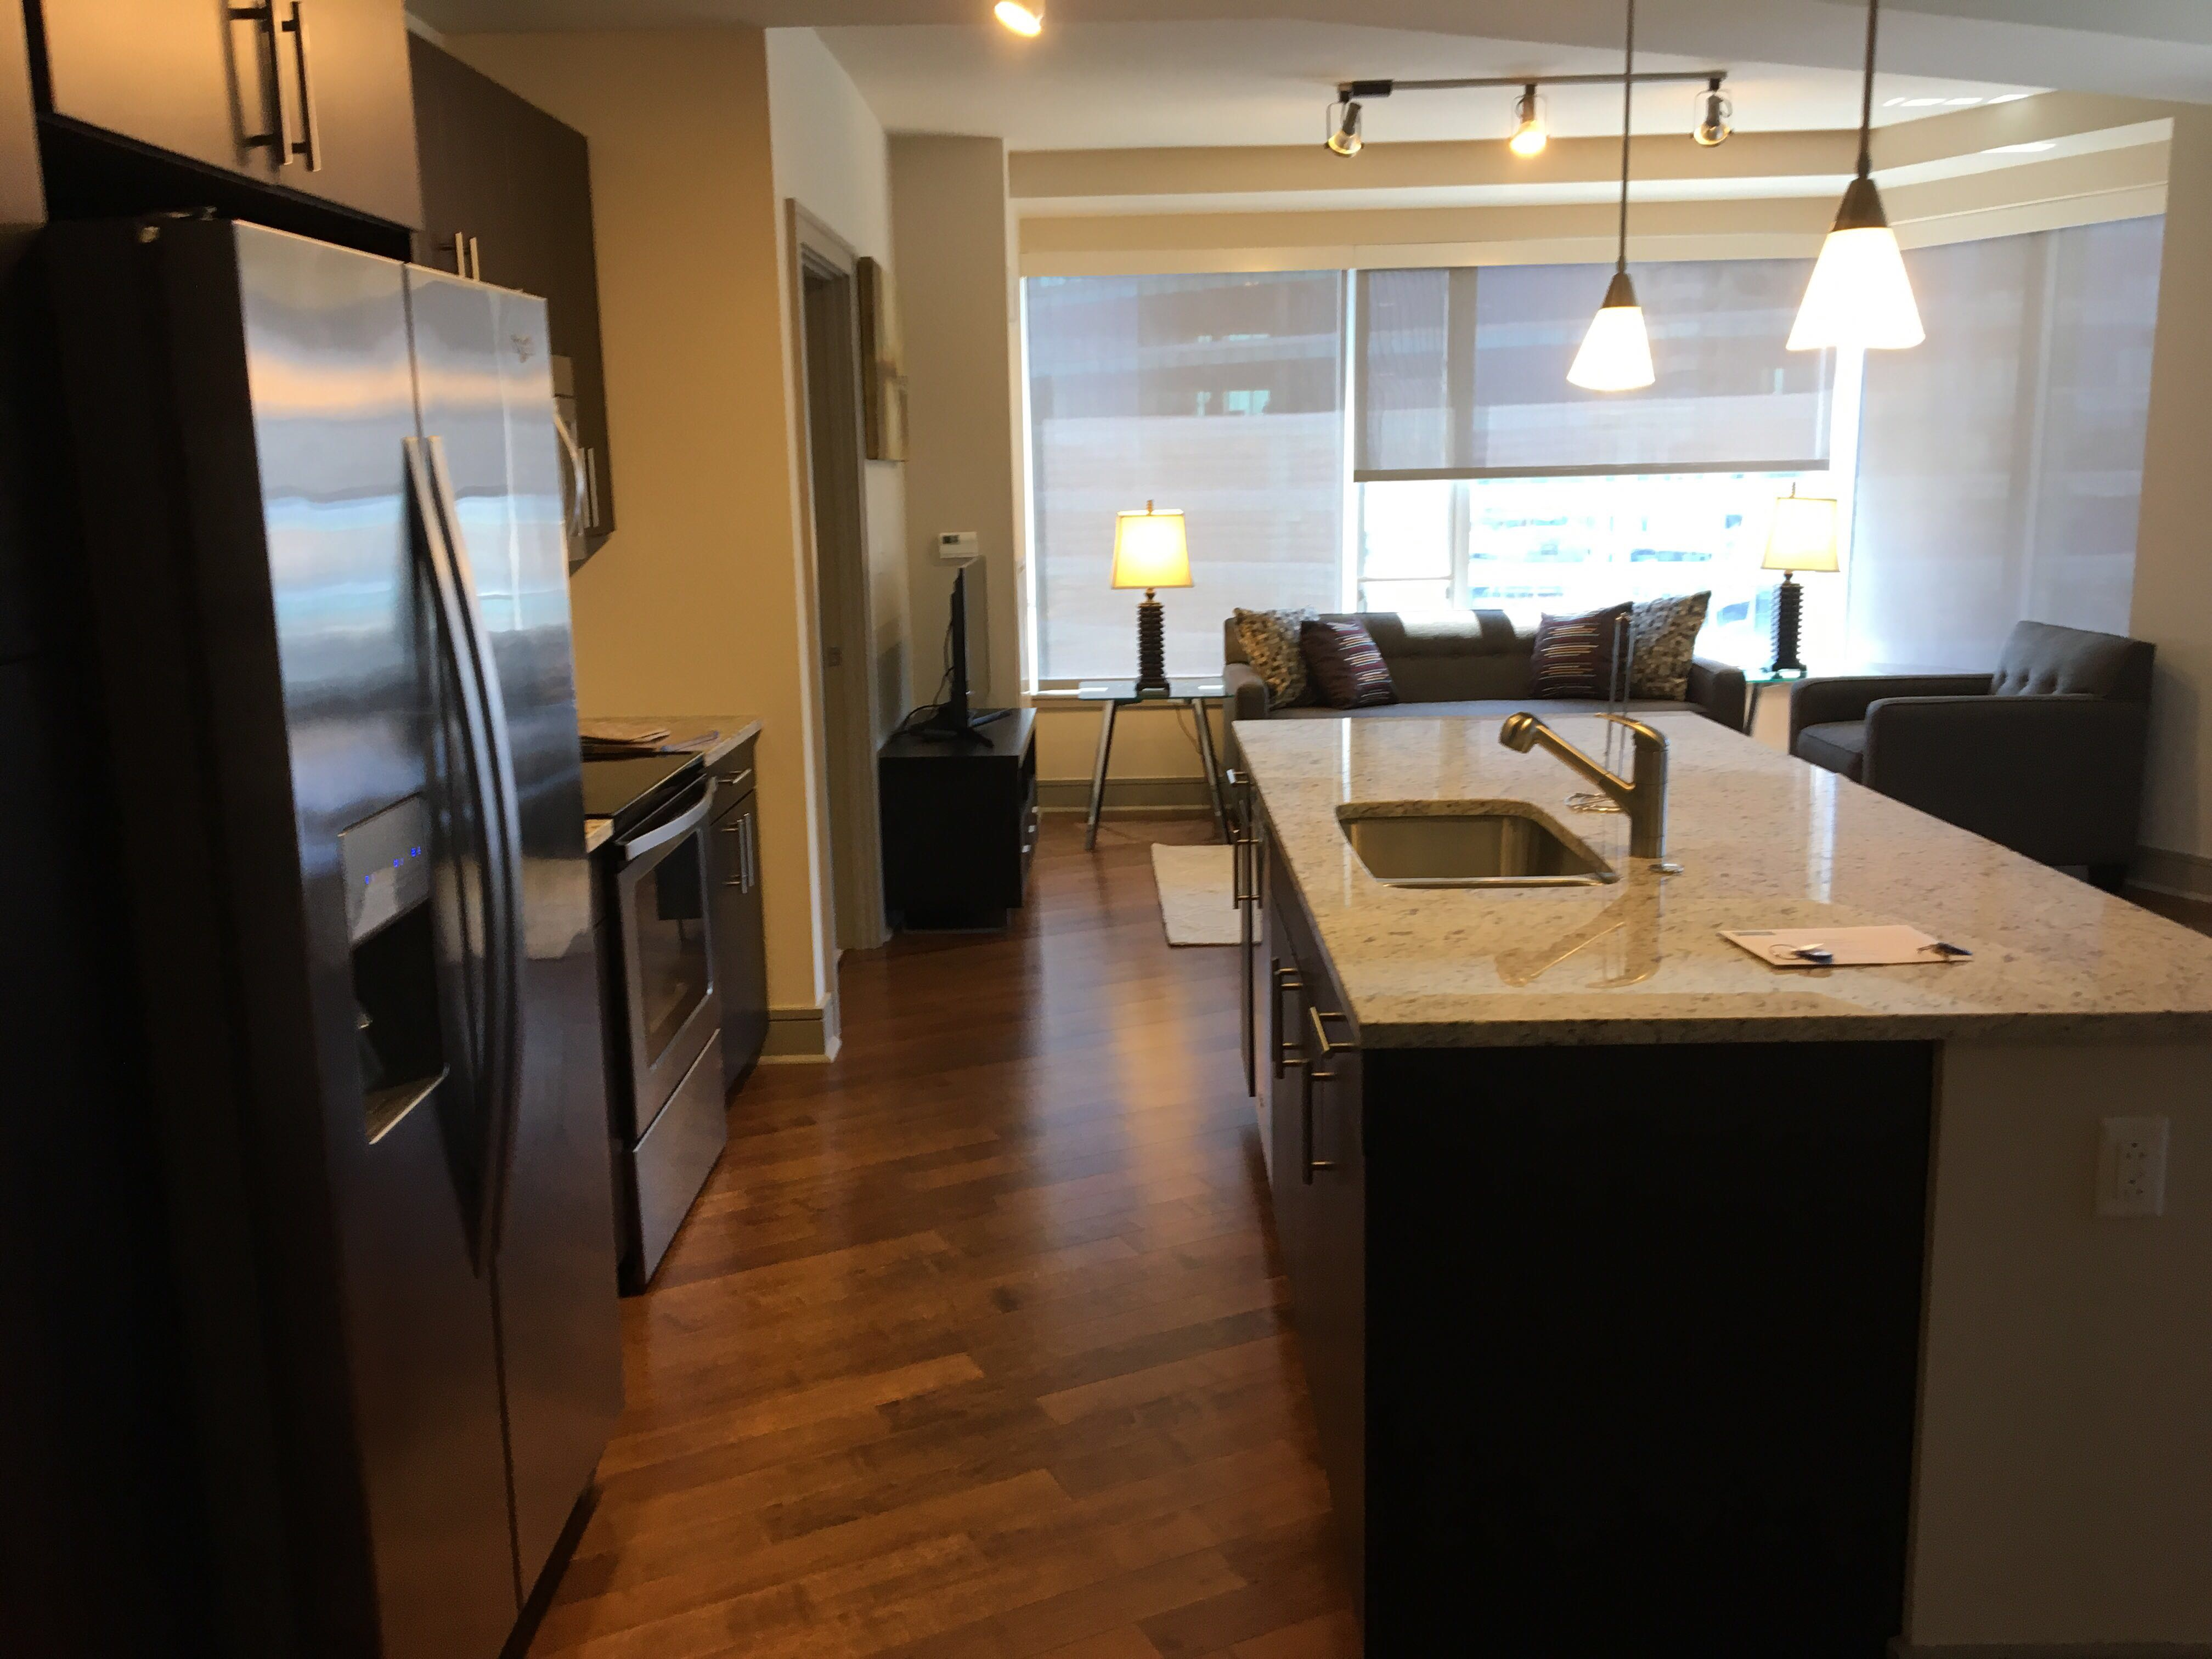 image 4 furnished 2 bedroom Apartment for rent in Waterfront, Boston Area